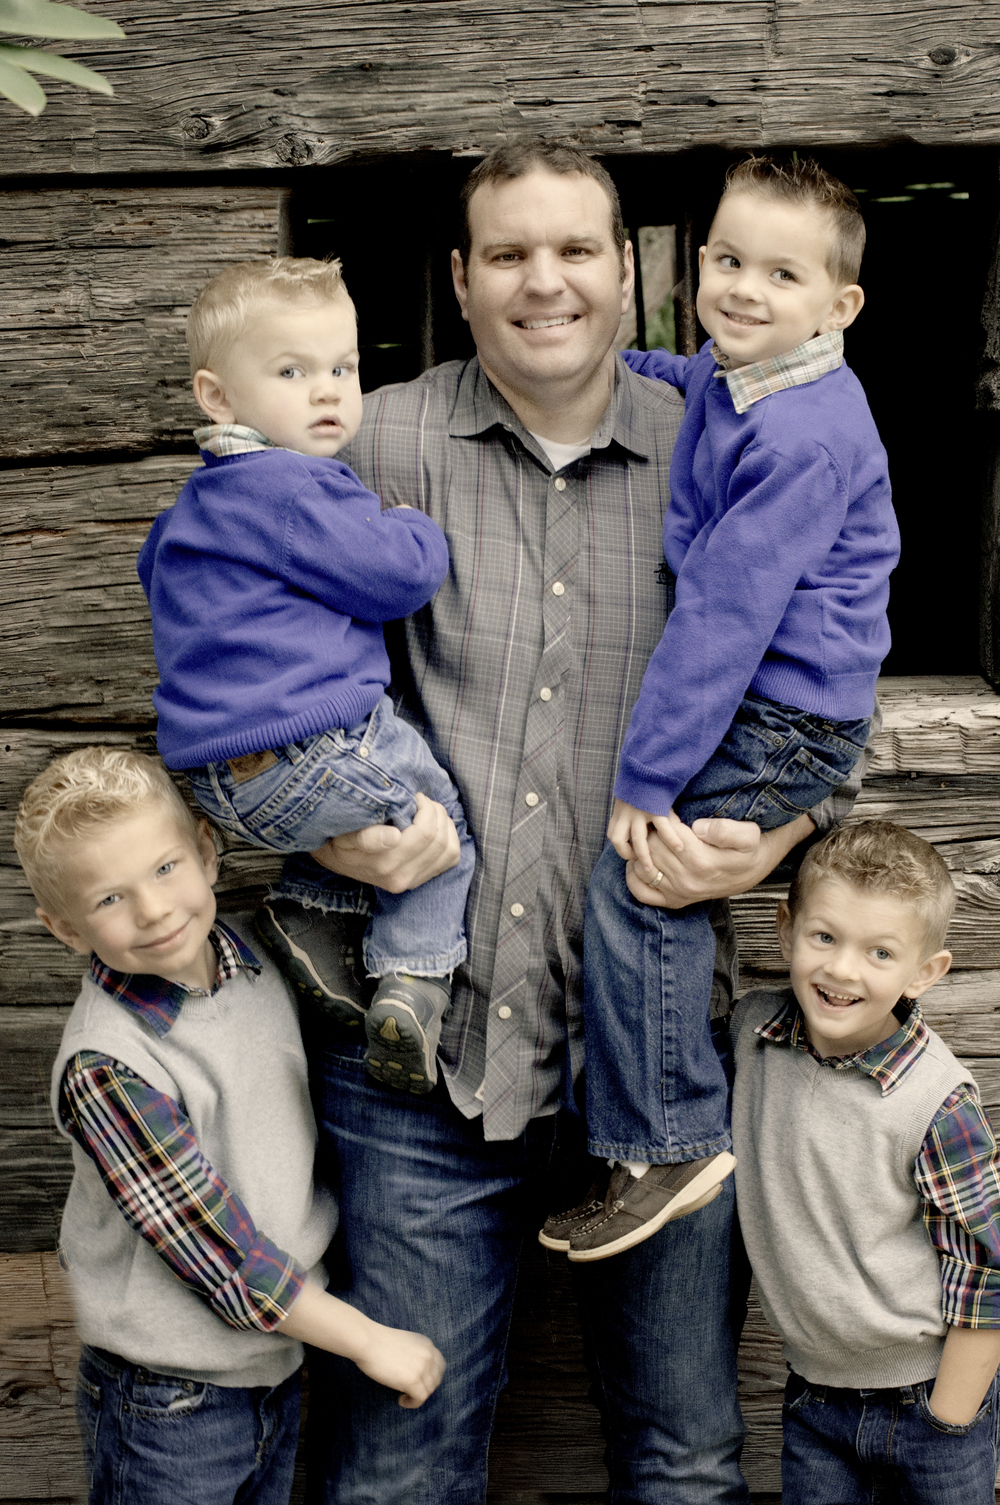 Anderson Family-Bret and boys.jpg